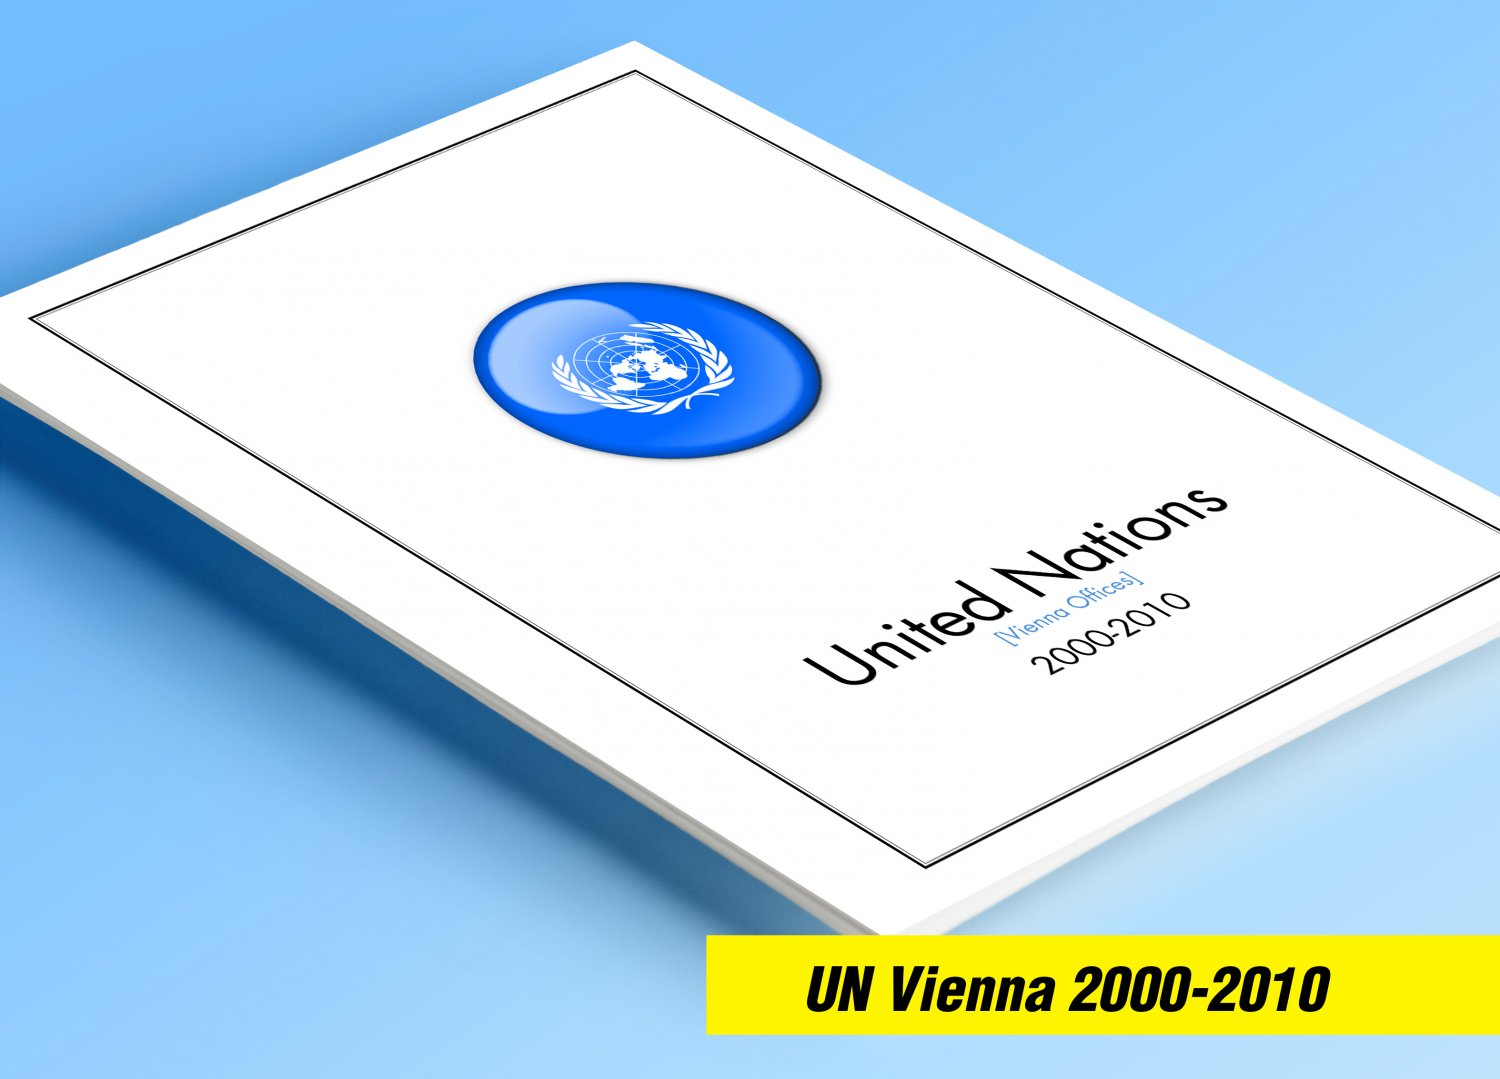 COLOR PRINTED UNITED NATIONS - VIENNA OFFICES 2000-2010 STAMP ALBUM  PAGES (55 illustrated pages)